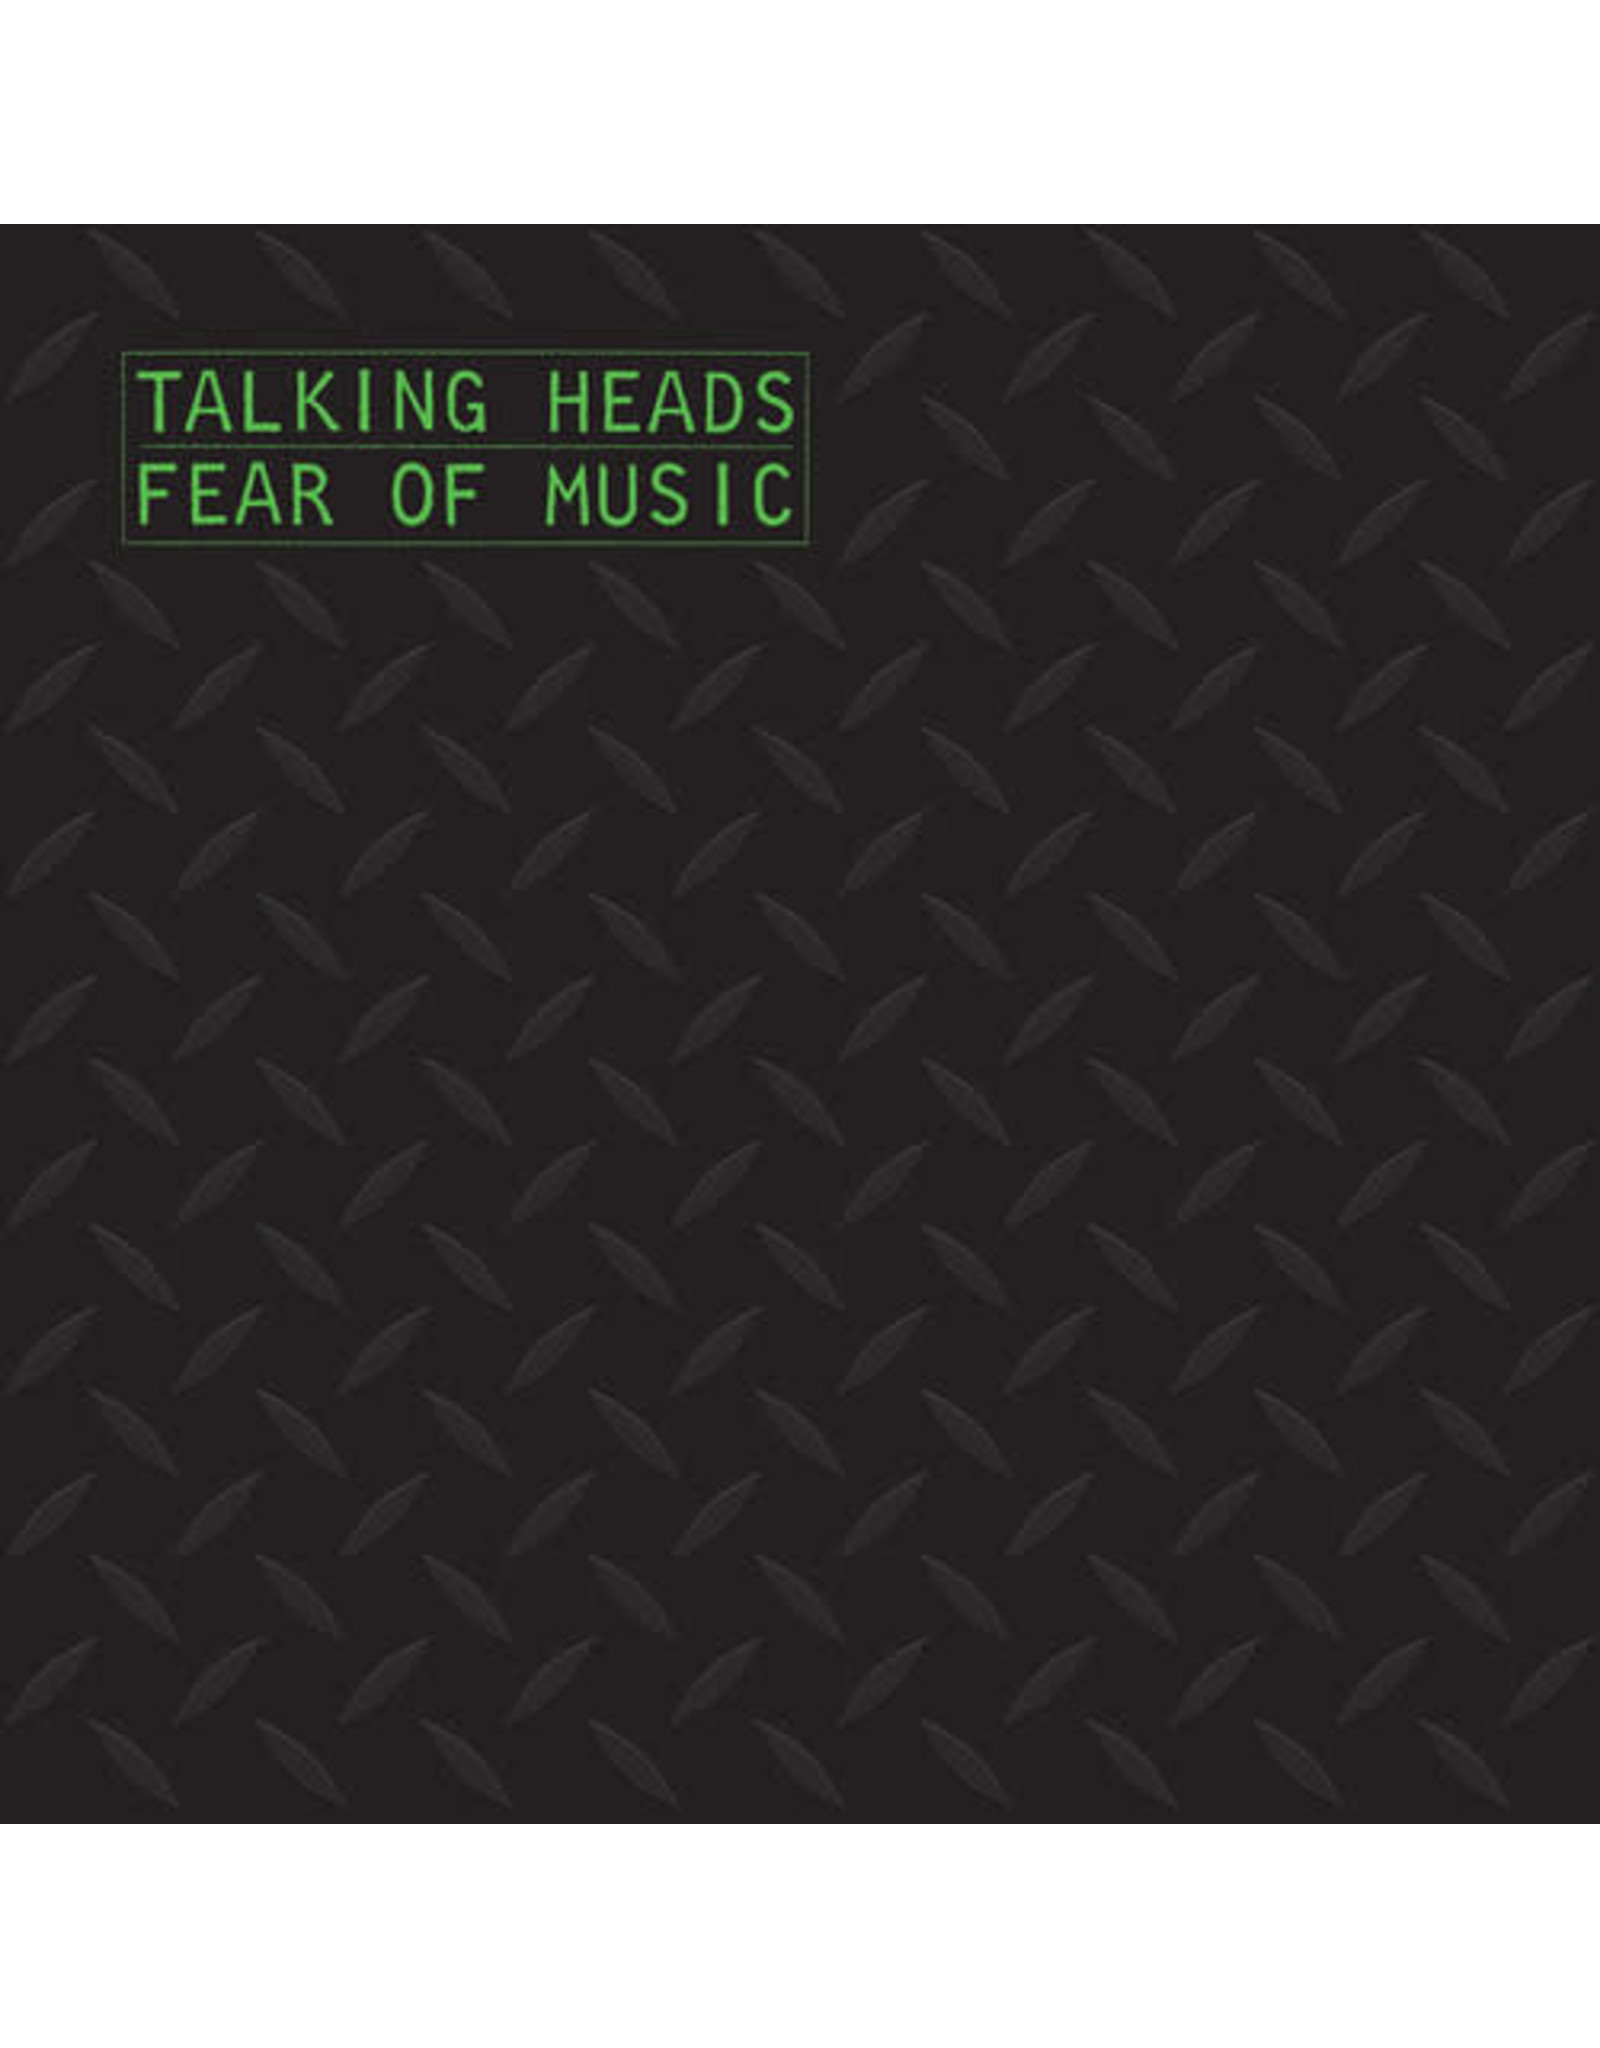 New Vinyl Talking Heads - Fear Of Music (Colored) LP